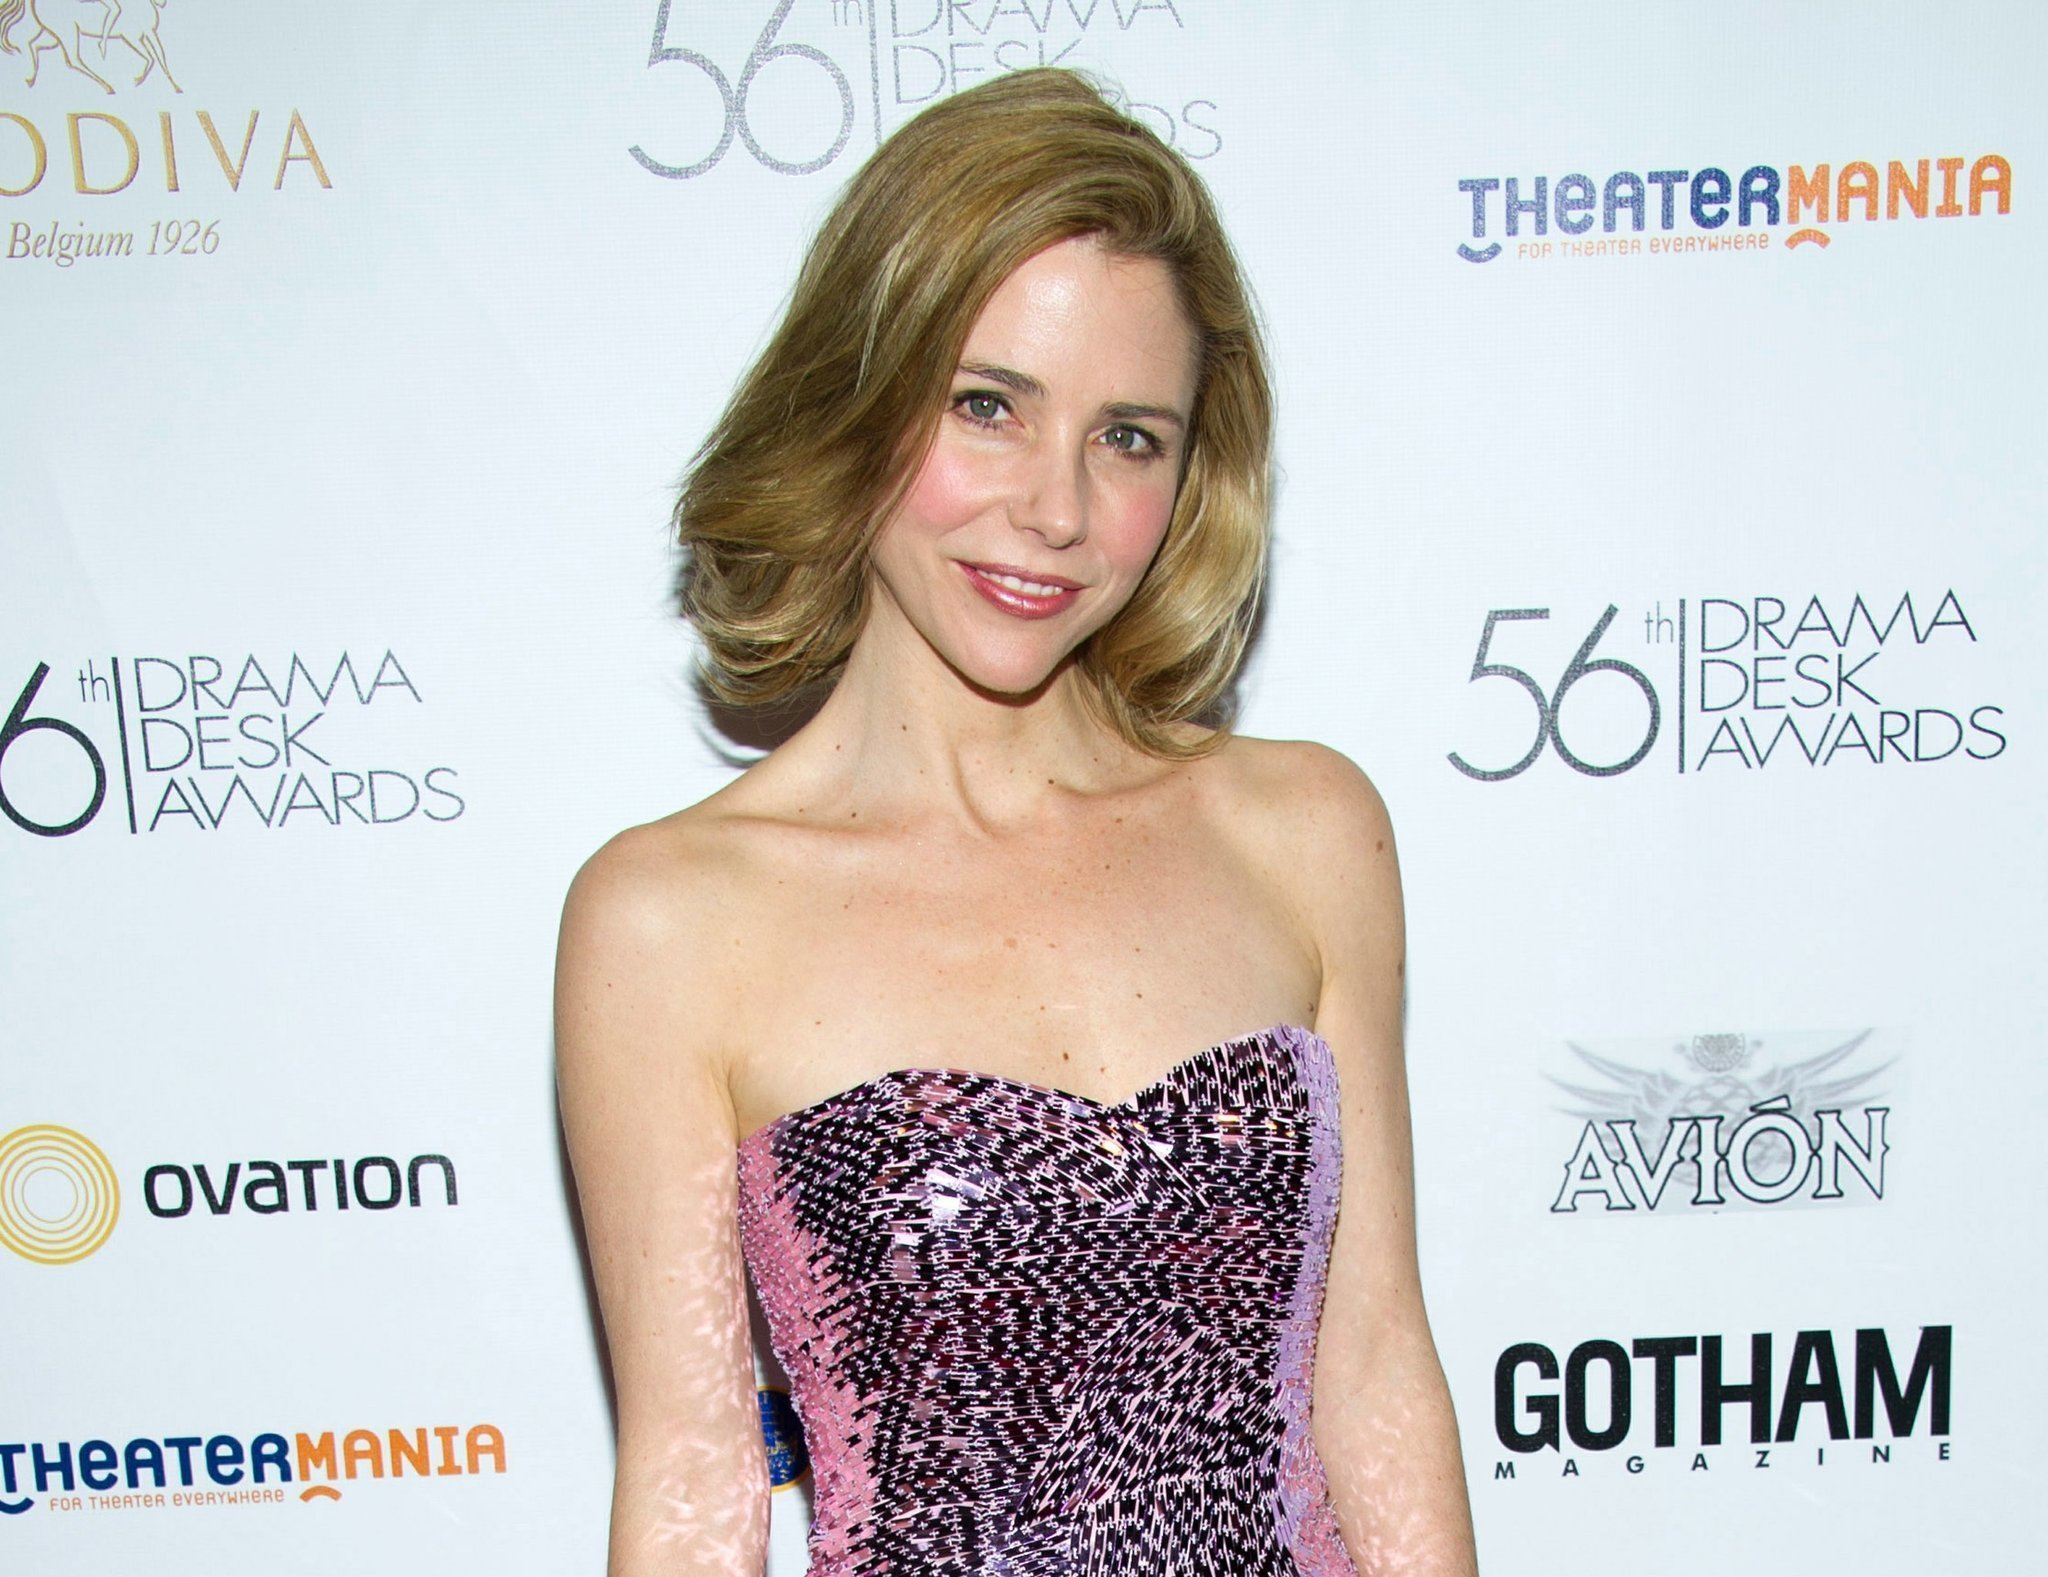 Kerry Butler nude (98 photos), Topless, Leaked, Feet, cleavage 2019